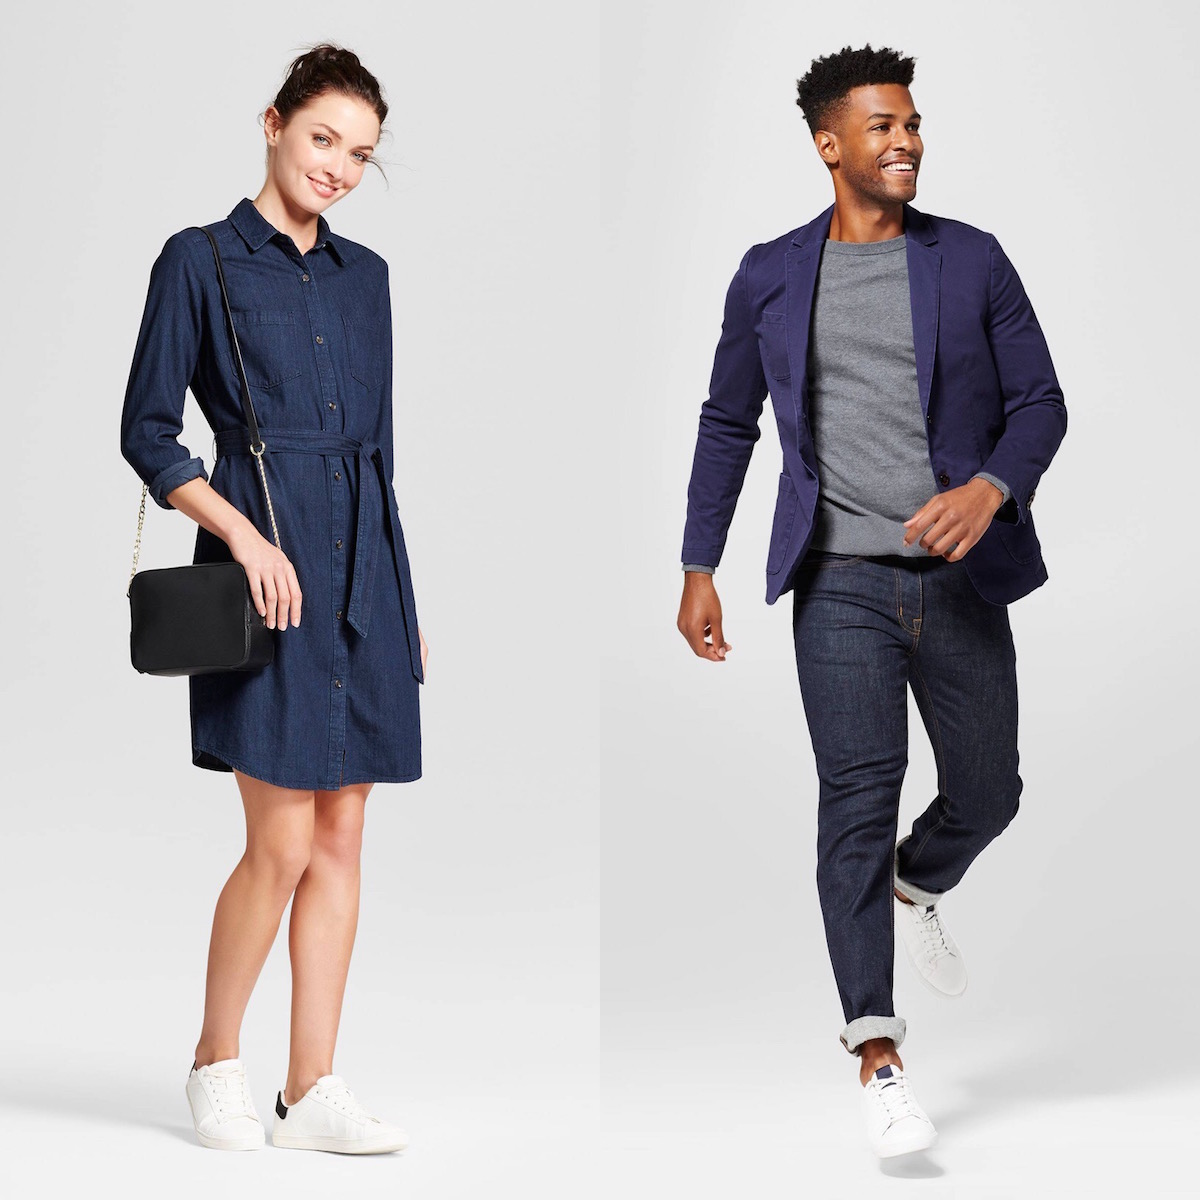 Target's New Clothing Brands: A New Day and Goodfellow & Co